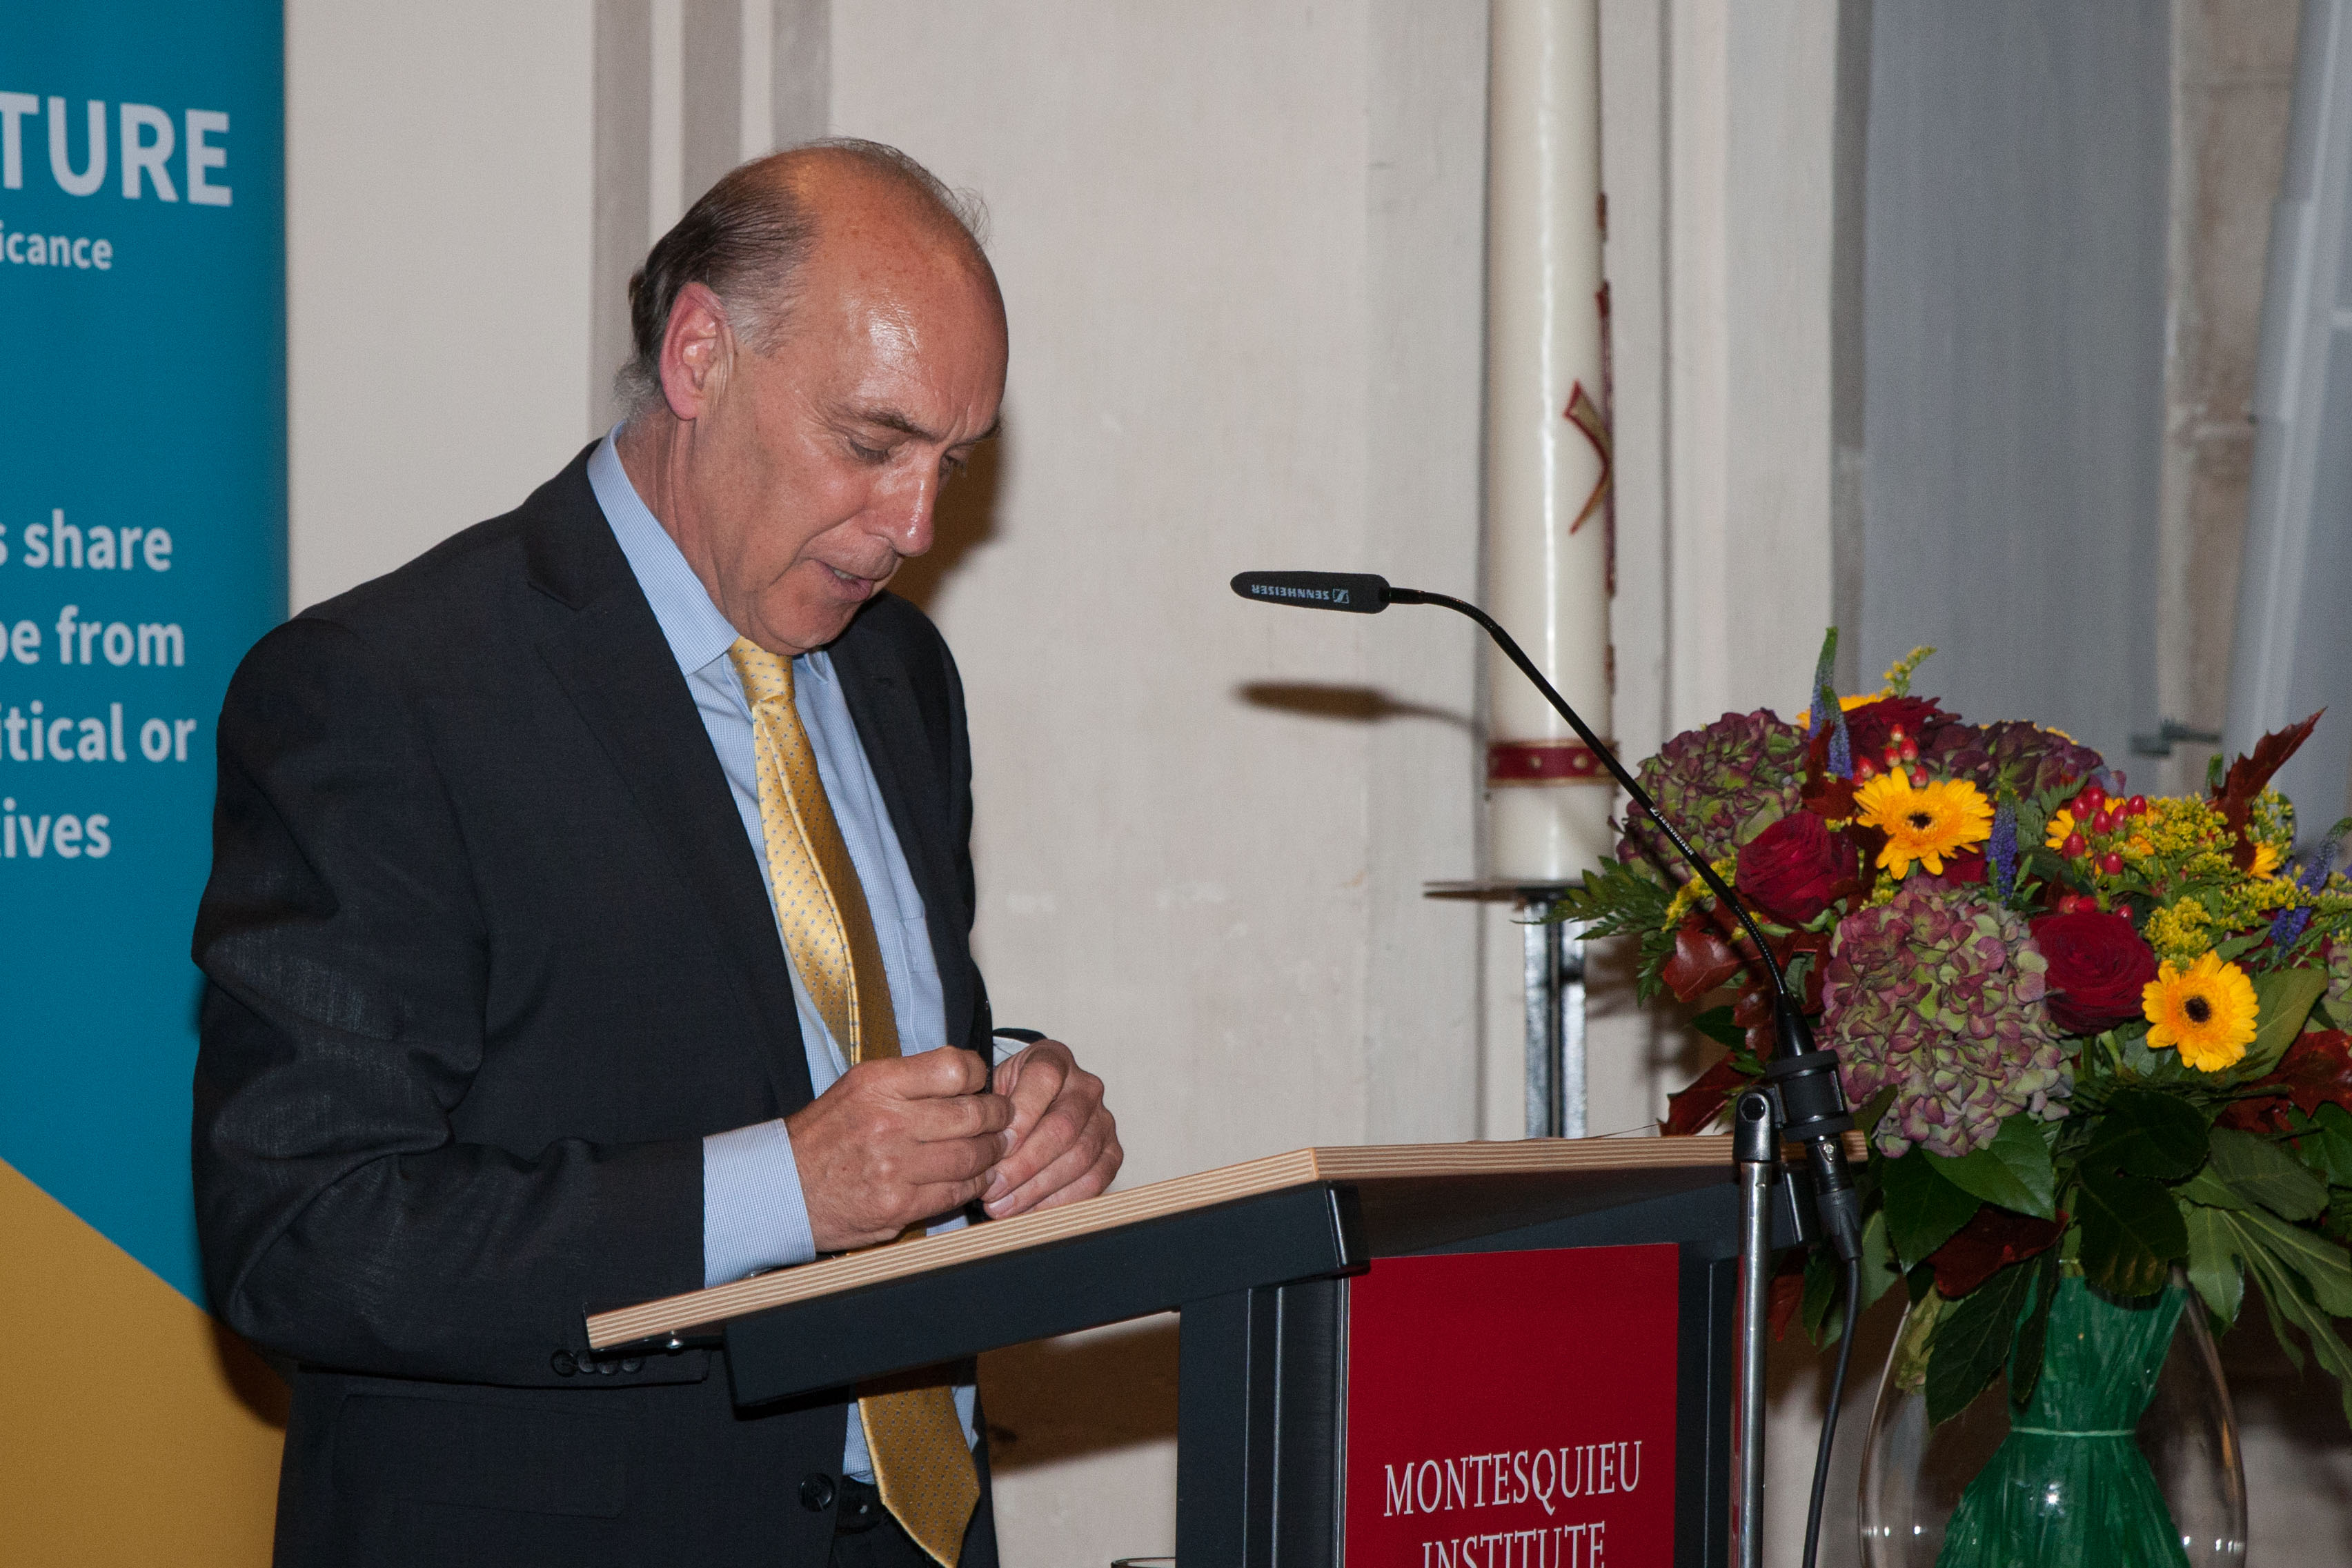 Mr. De Bruijn, moderator of the Europe Lecture 2014